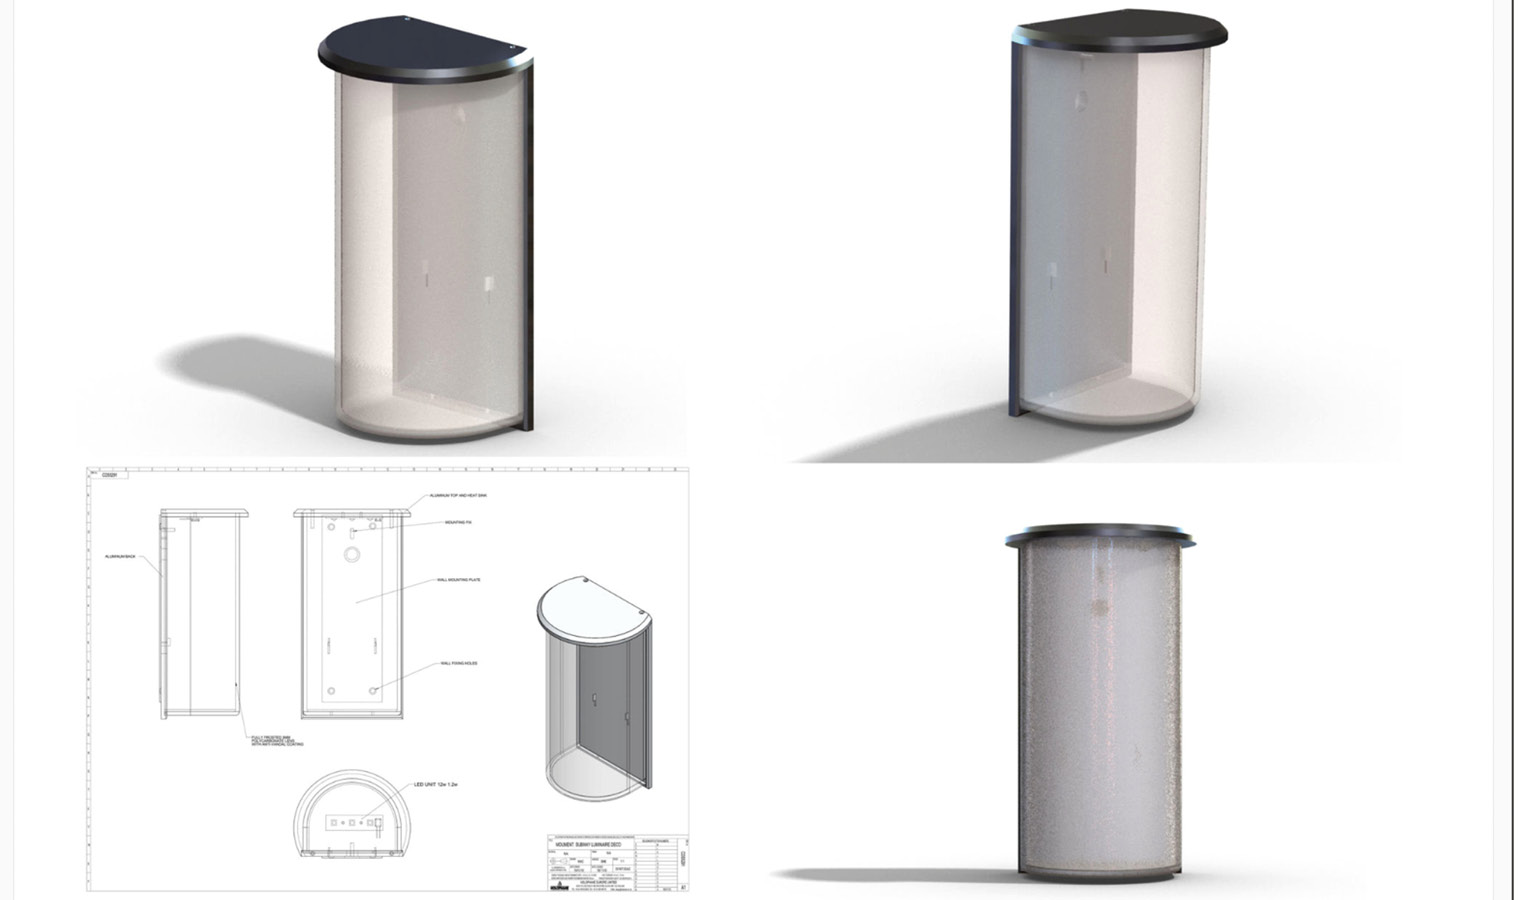 Drawings of product design